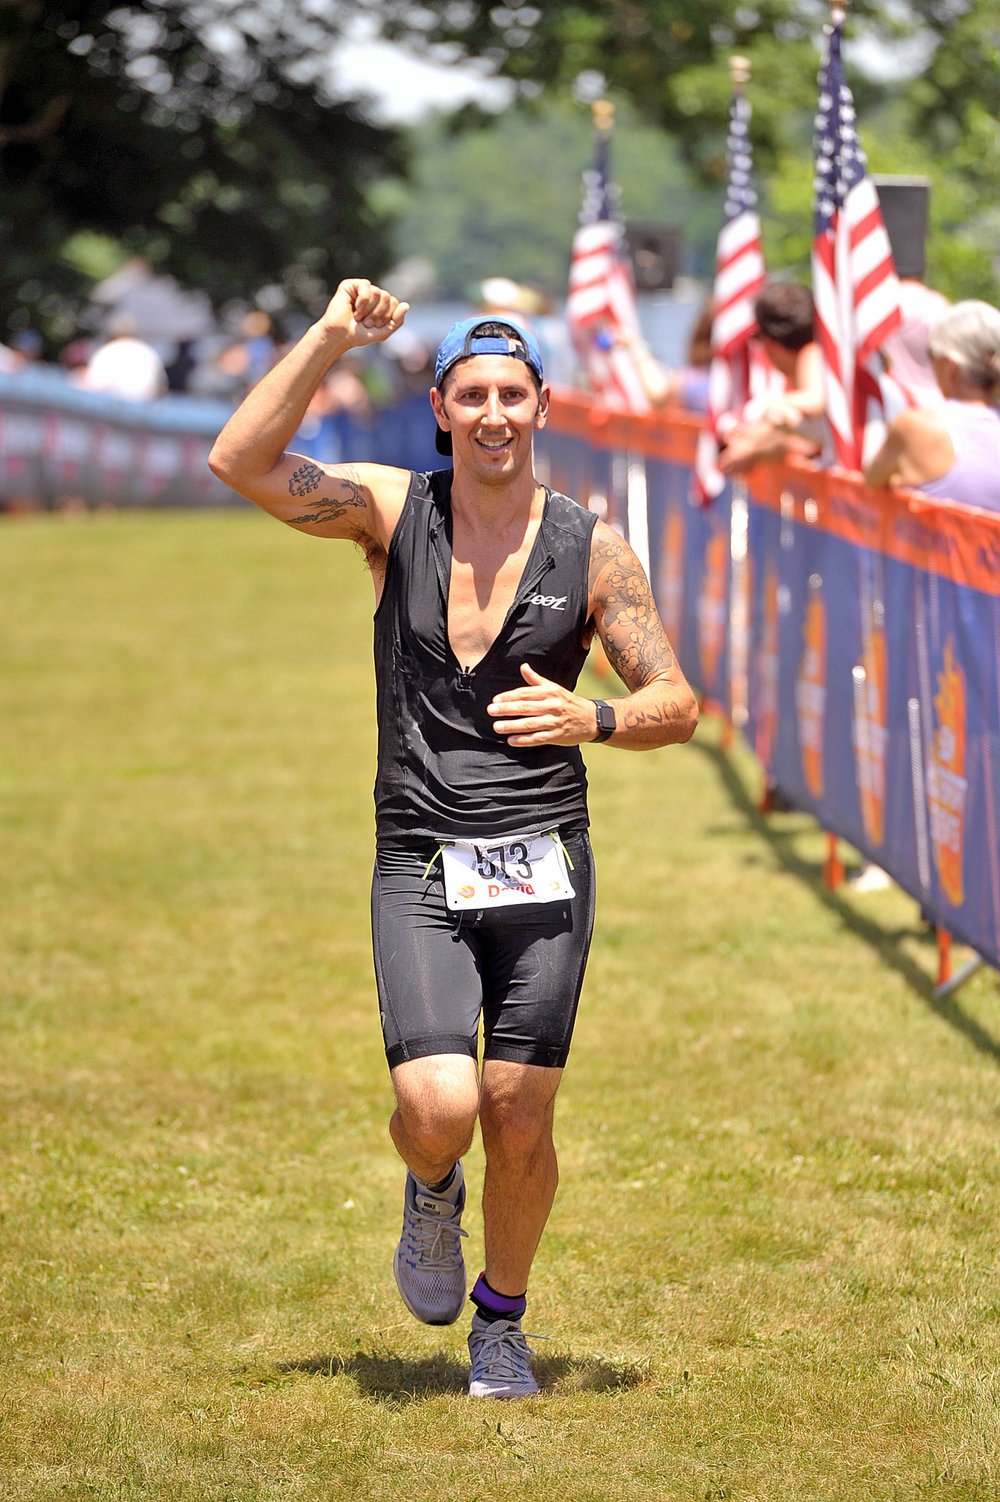 IM703 Finish 1.jpg